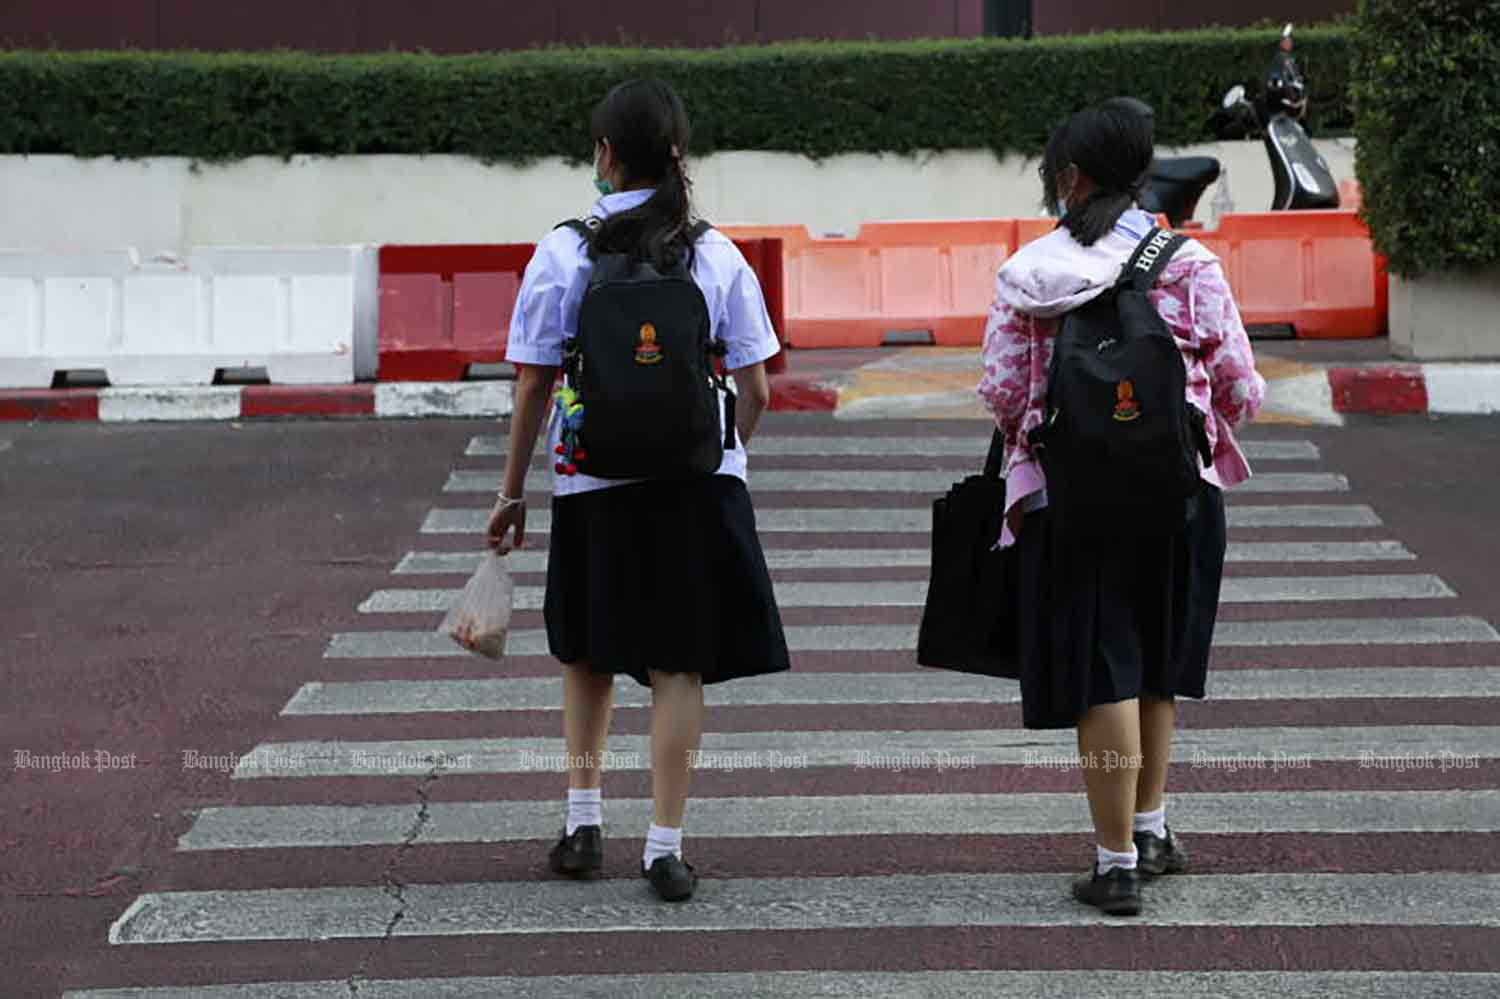 Students go to school in Bangkok on Tuesday. (Photo: Arnun Chonmahatrakool)